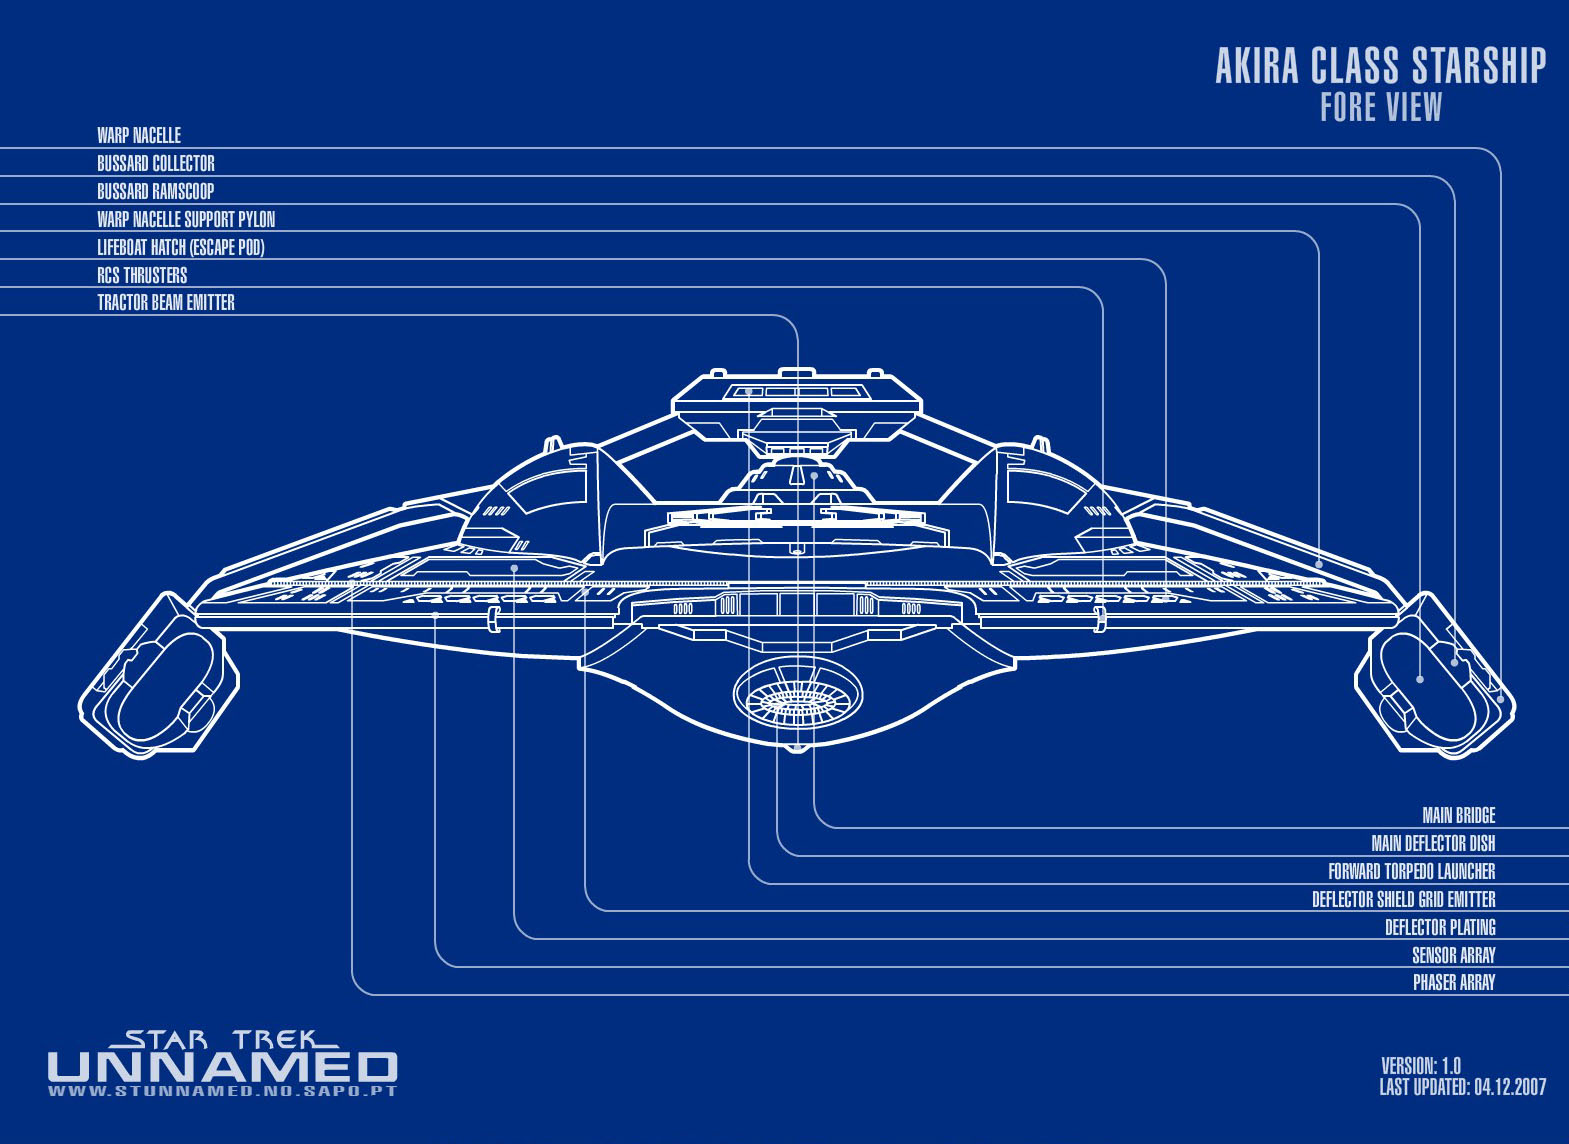 Akira Class Starship Blueprints http://starfleet.unblog.fr/category/plans-schematiques/page/4/